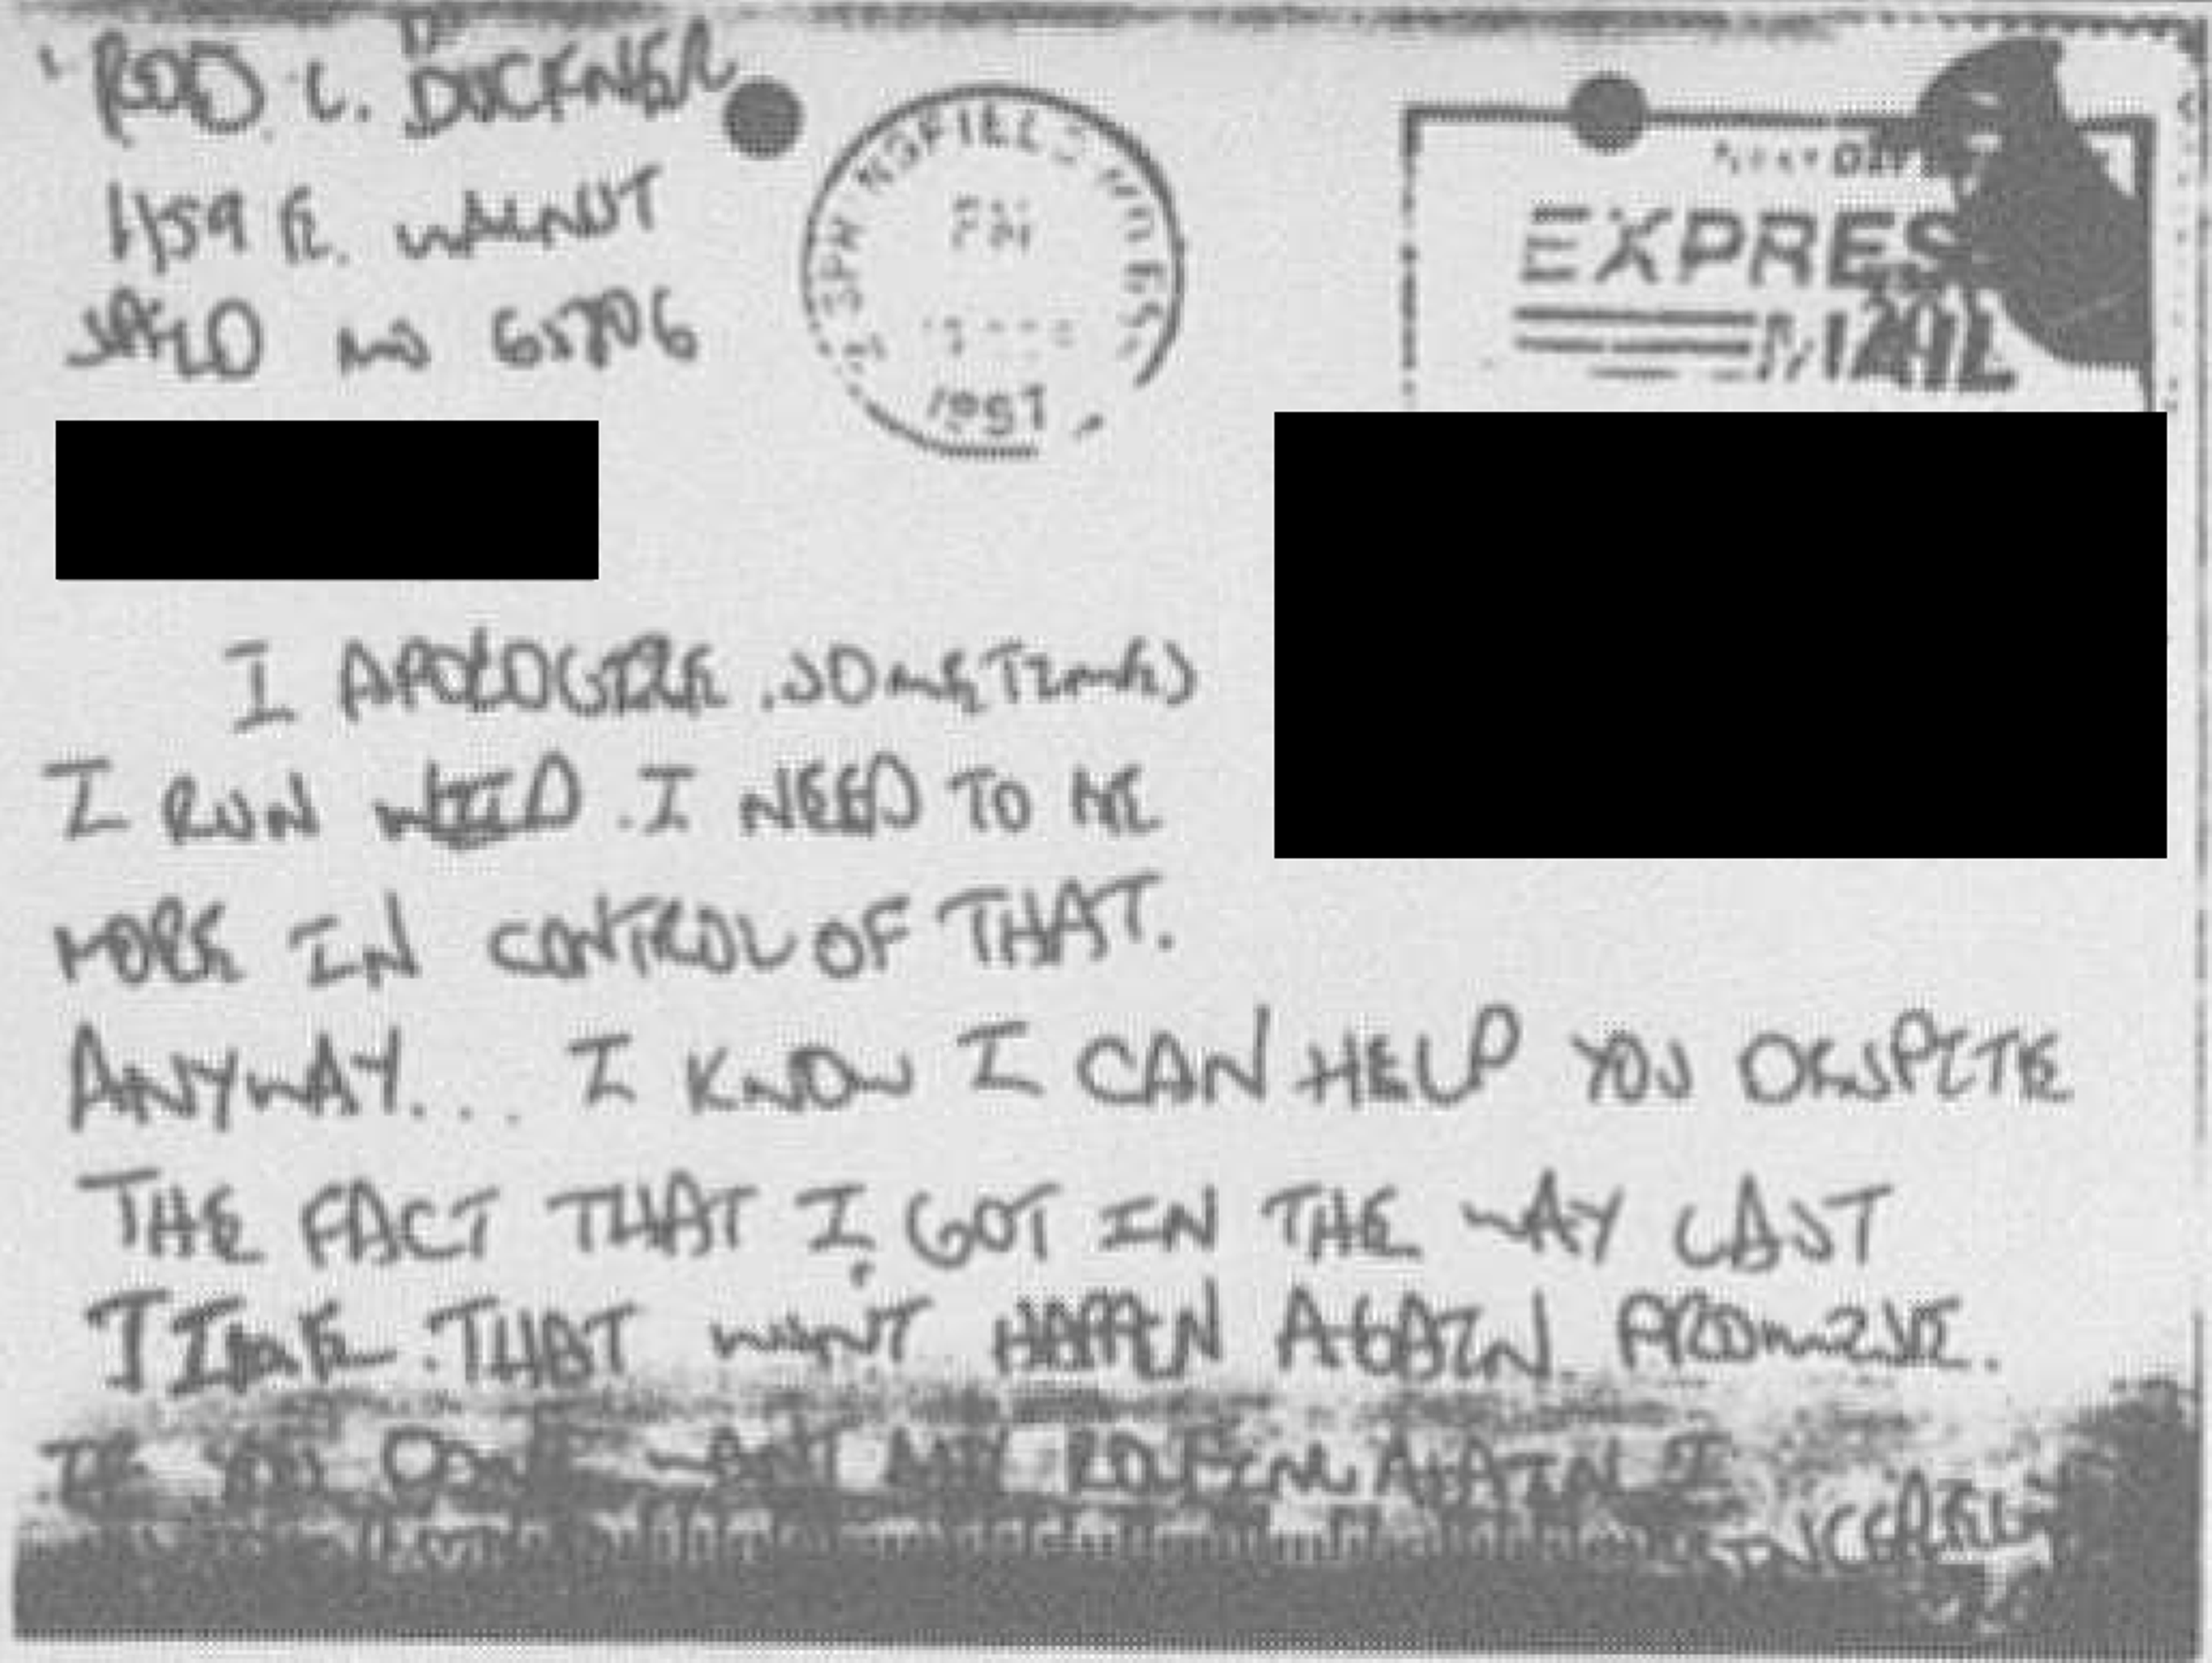 A woman said she received this postcard from Rod Buckner